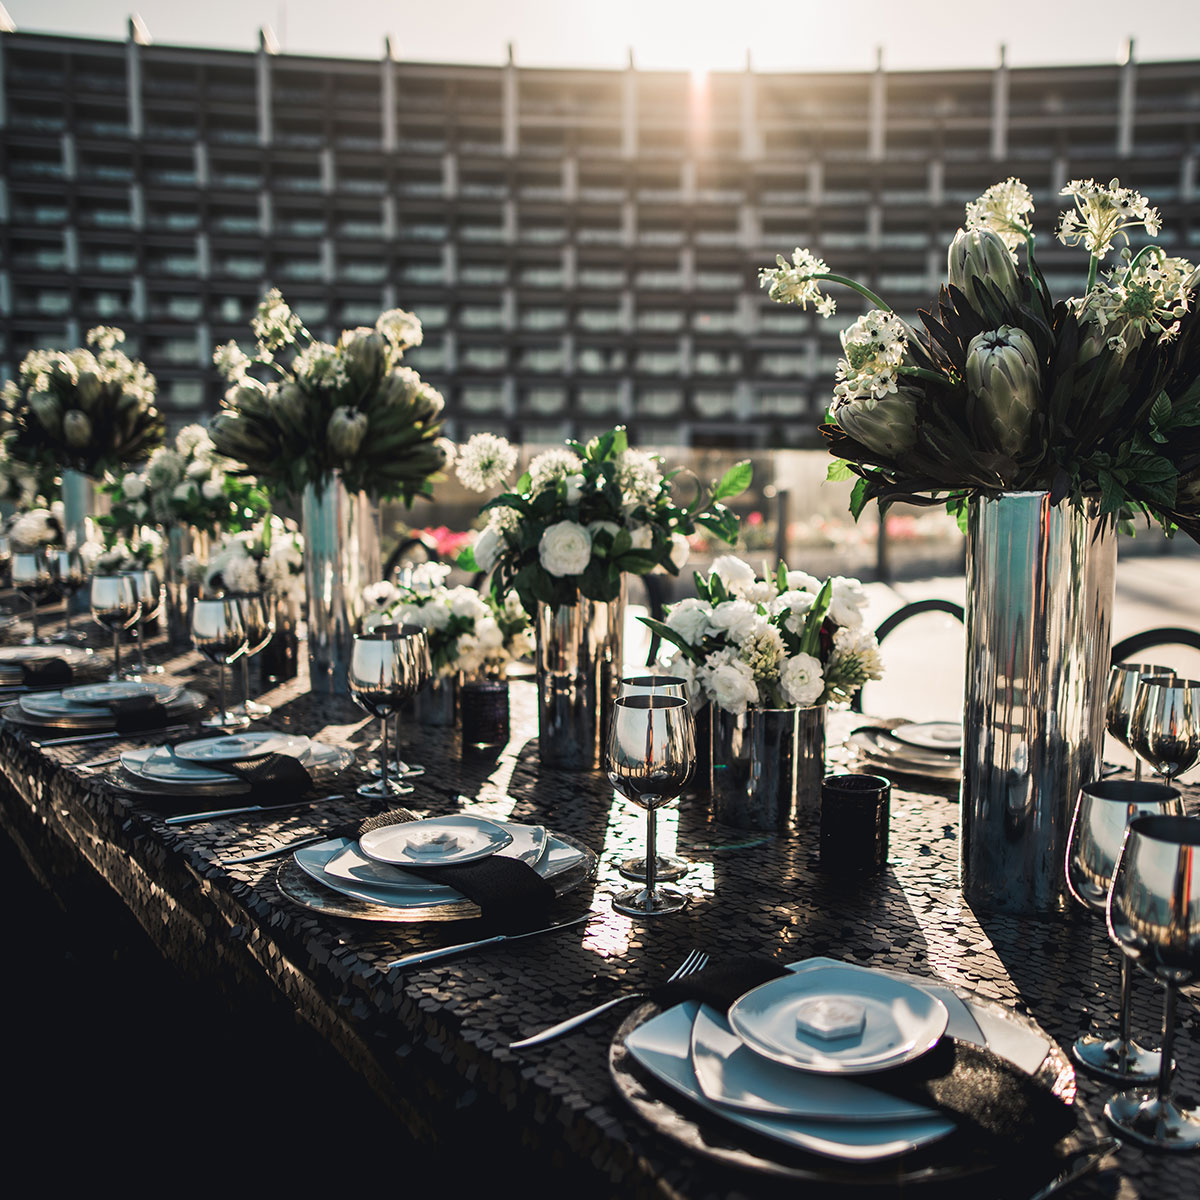 grand velas wedding design by del cabo weddings photo by dennis berti event design and wedding planning 3